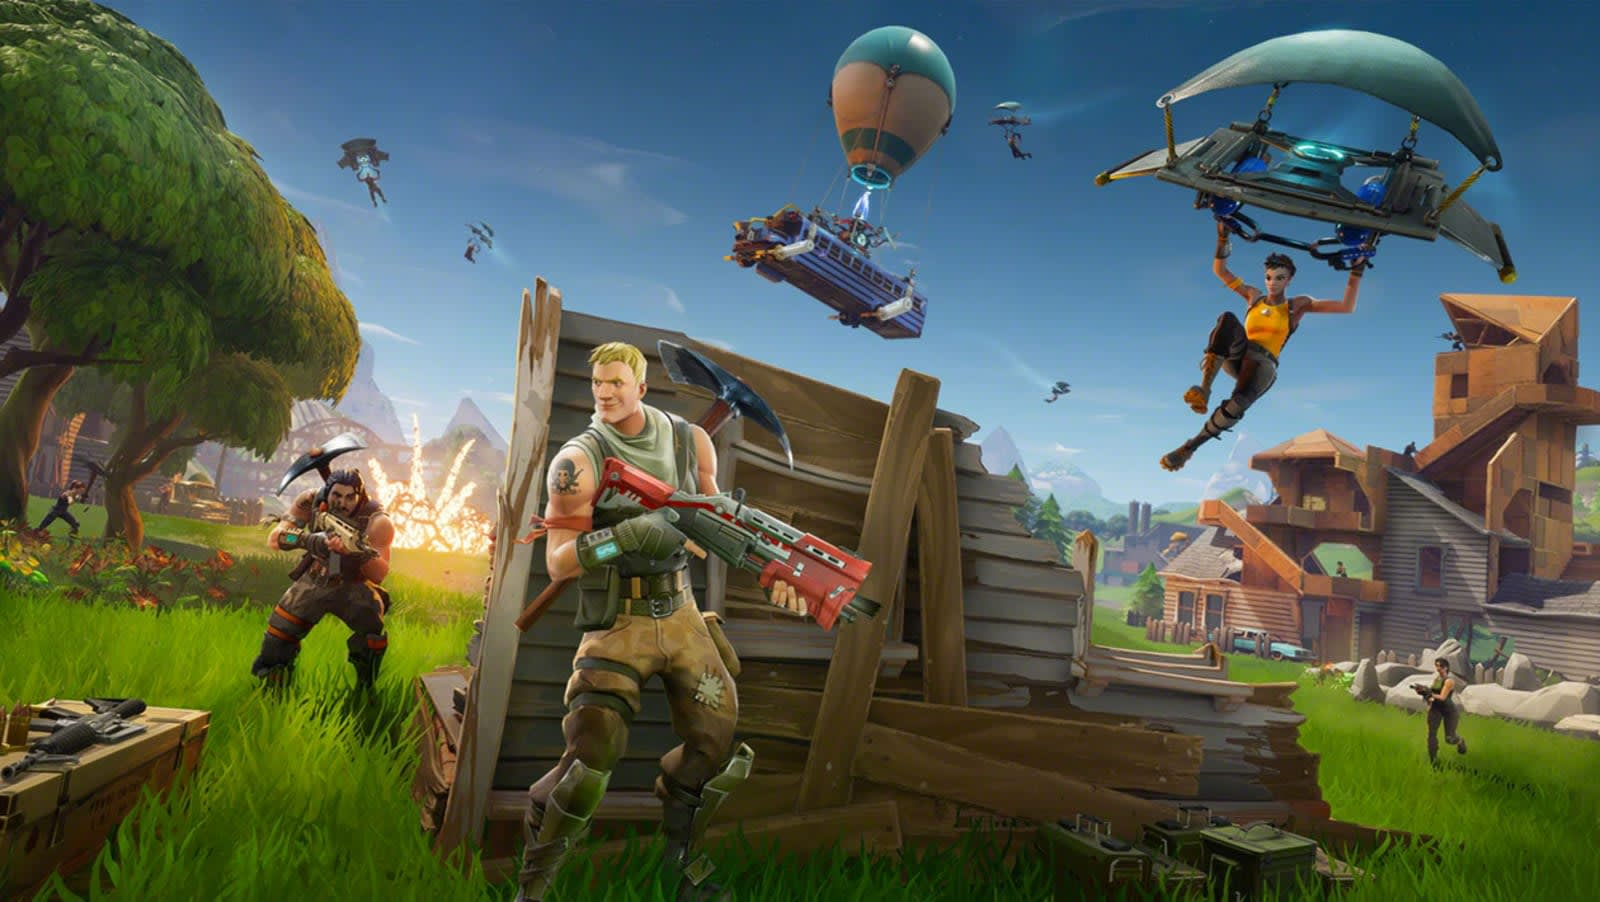 Official 'Fortnite' circuits are coming to colleges and high schools